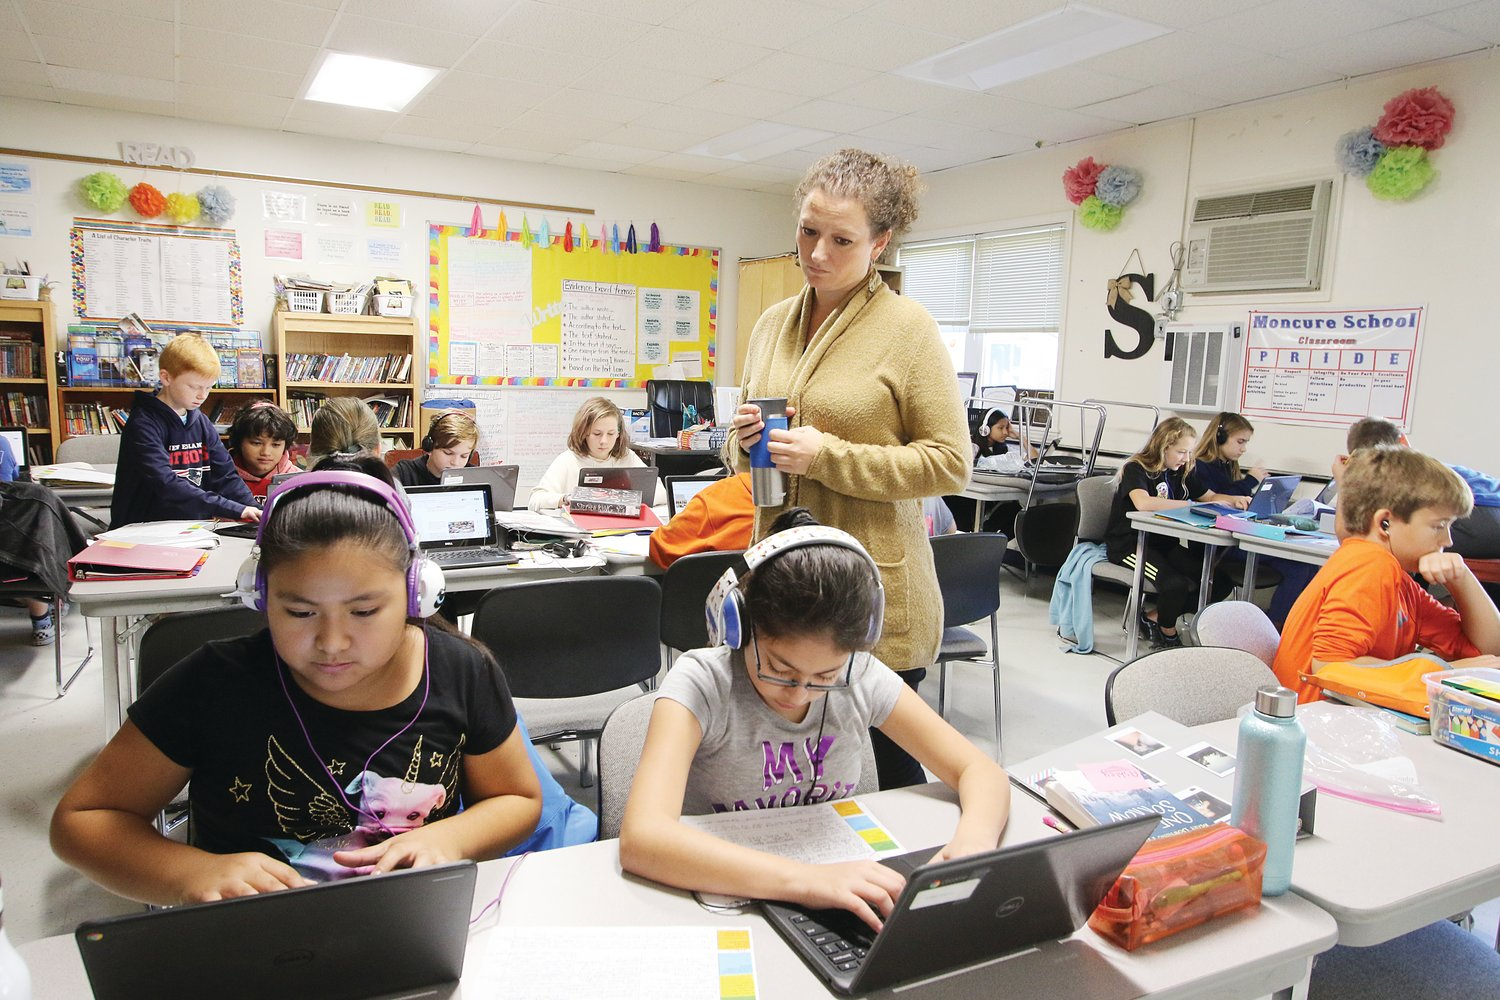 Moncure School educator Alicia Shoup looks in on 5th-grader Angie Rueda Perez (left) and 6th-grader Citlaly Perez.